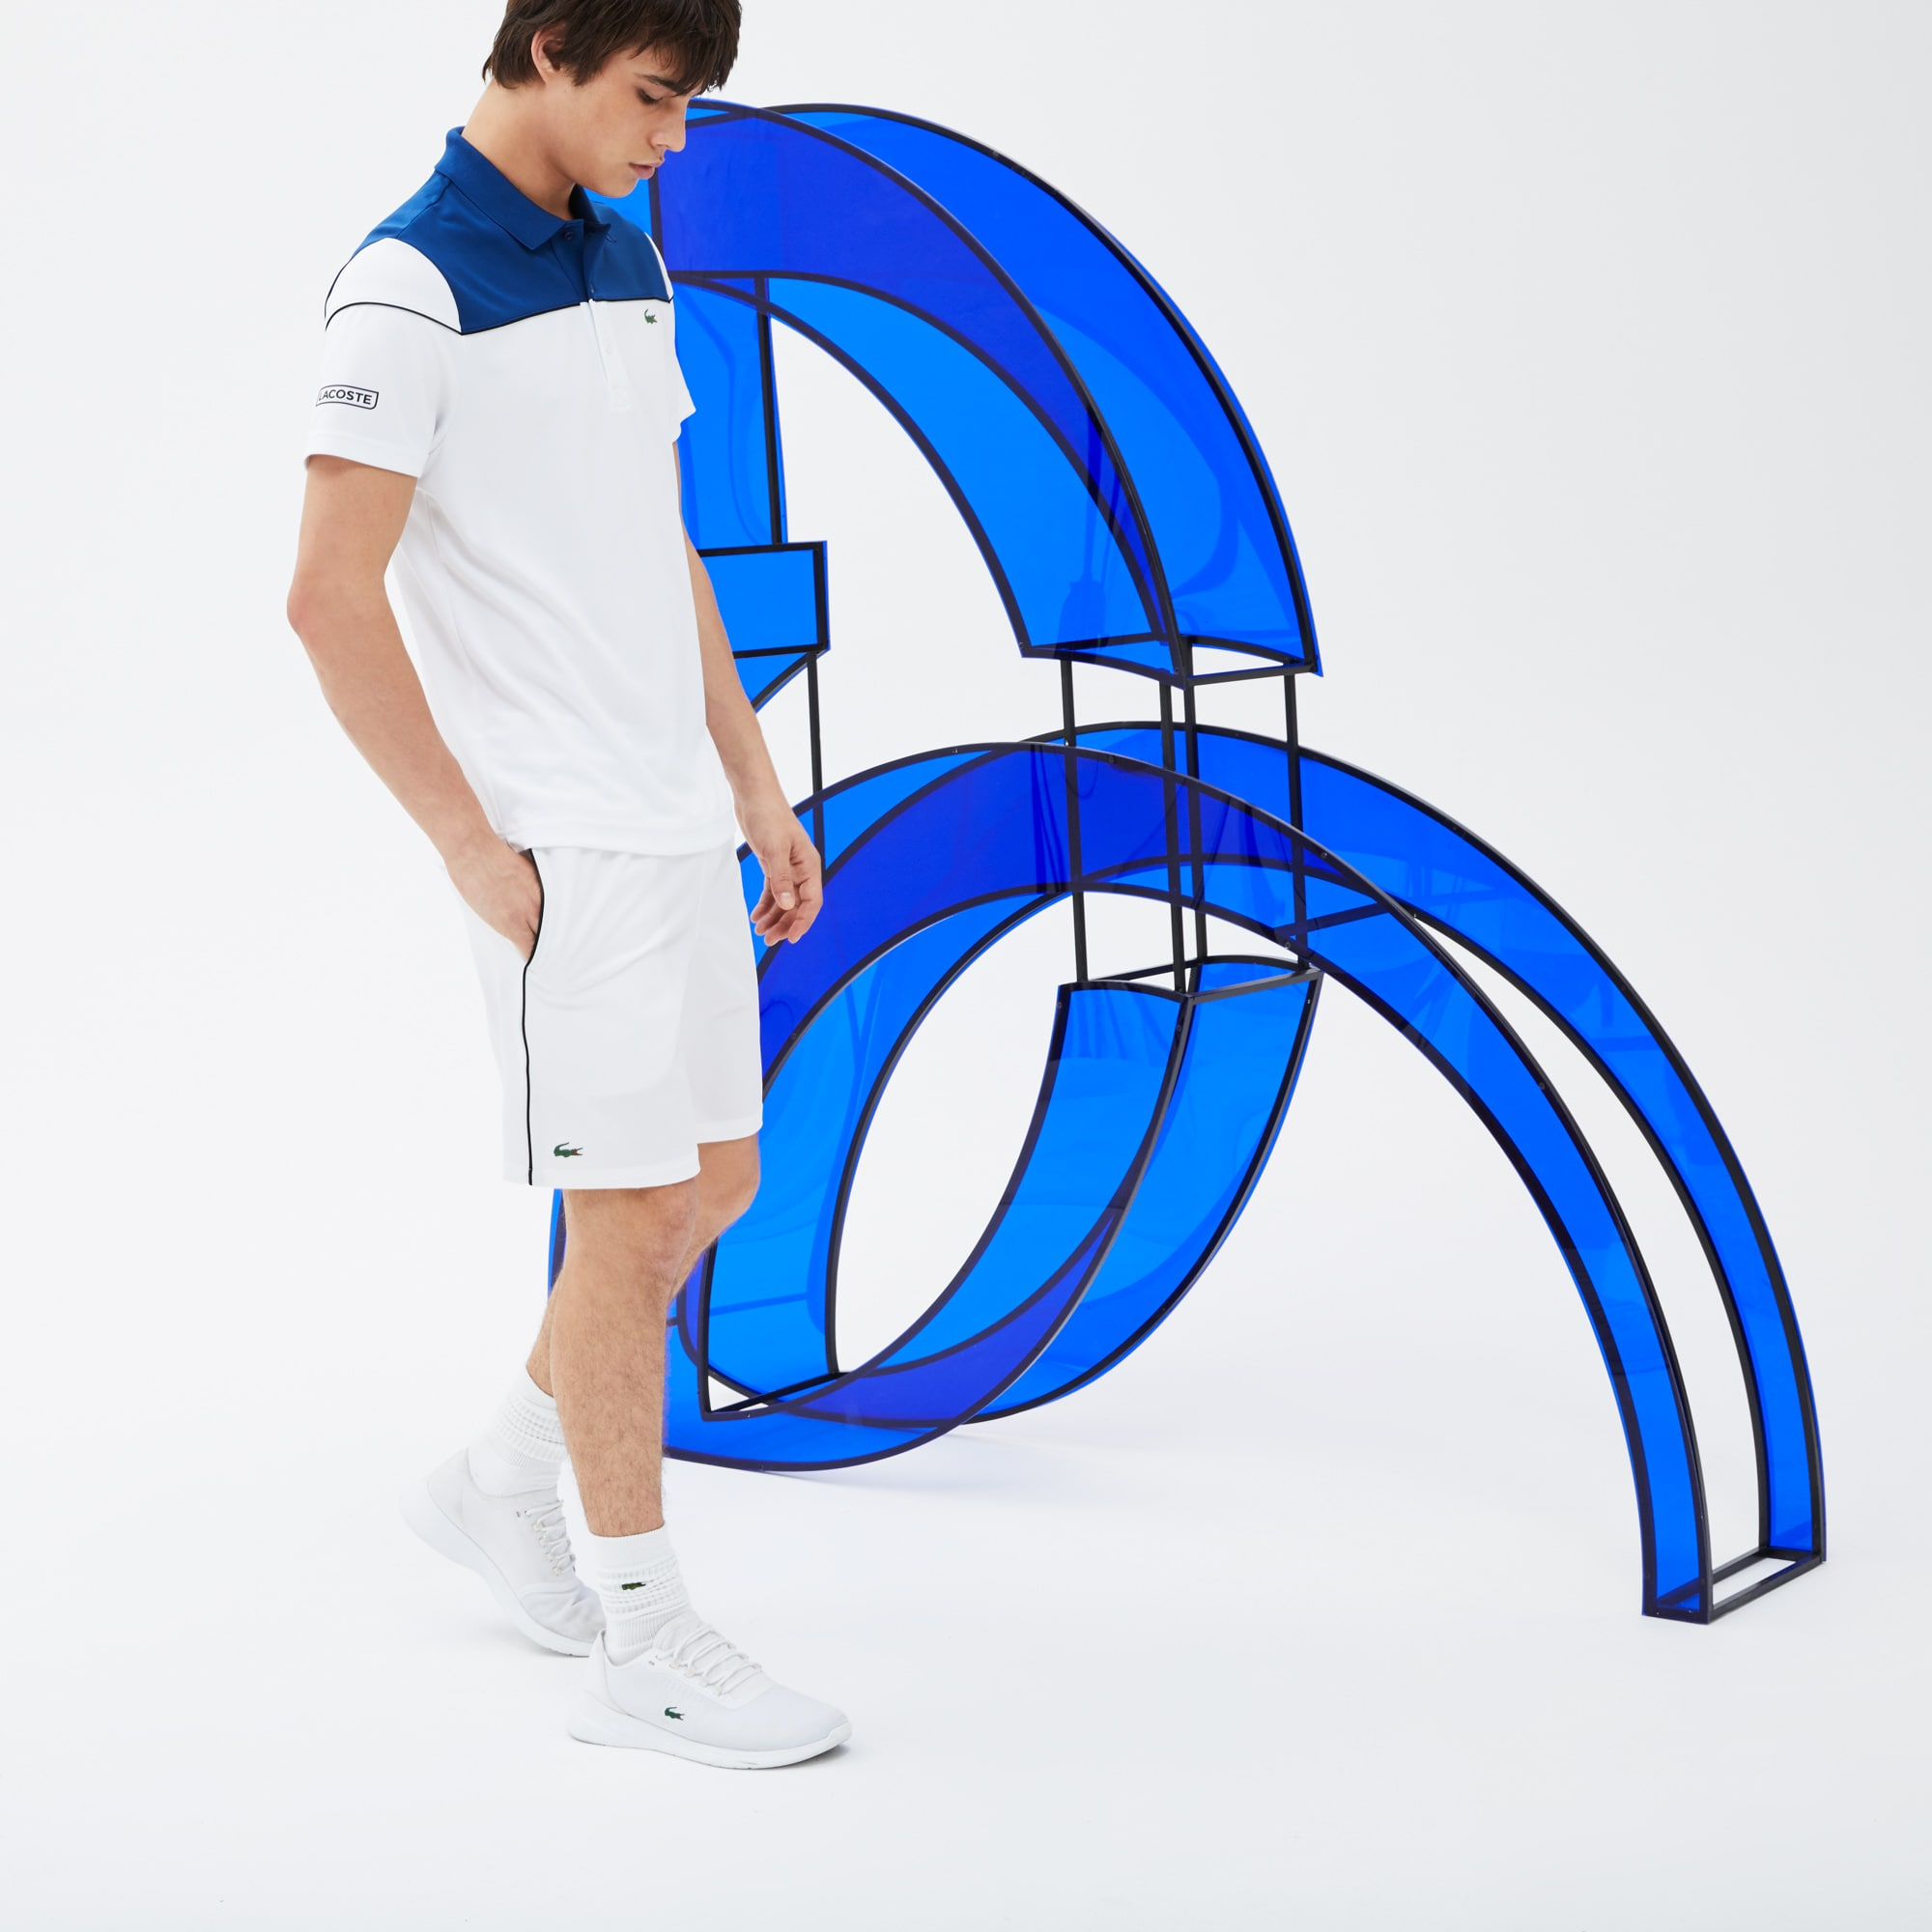 Polo LACOSTE SPORT COLLECTION NOVAK DJOKOVIC en piqué técnico color block